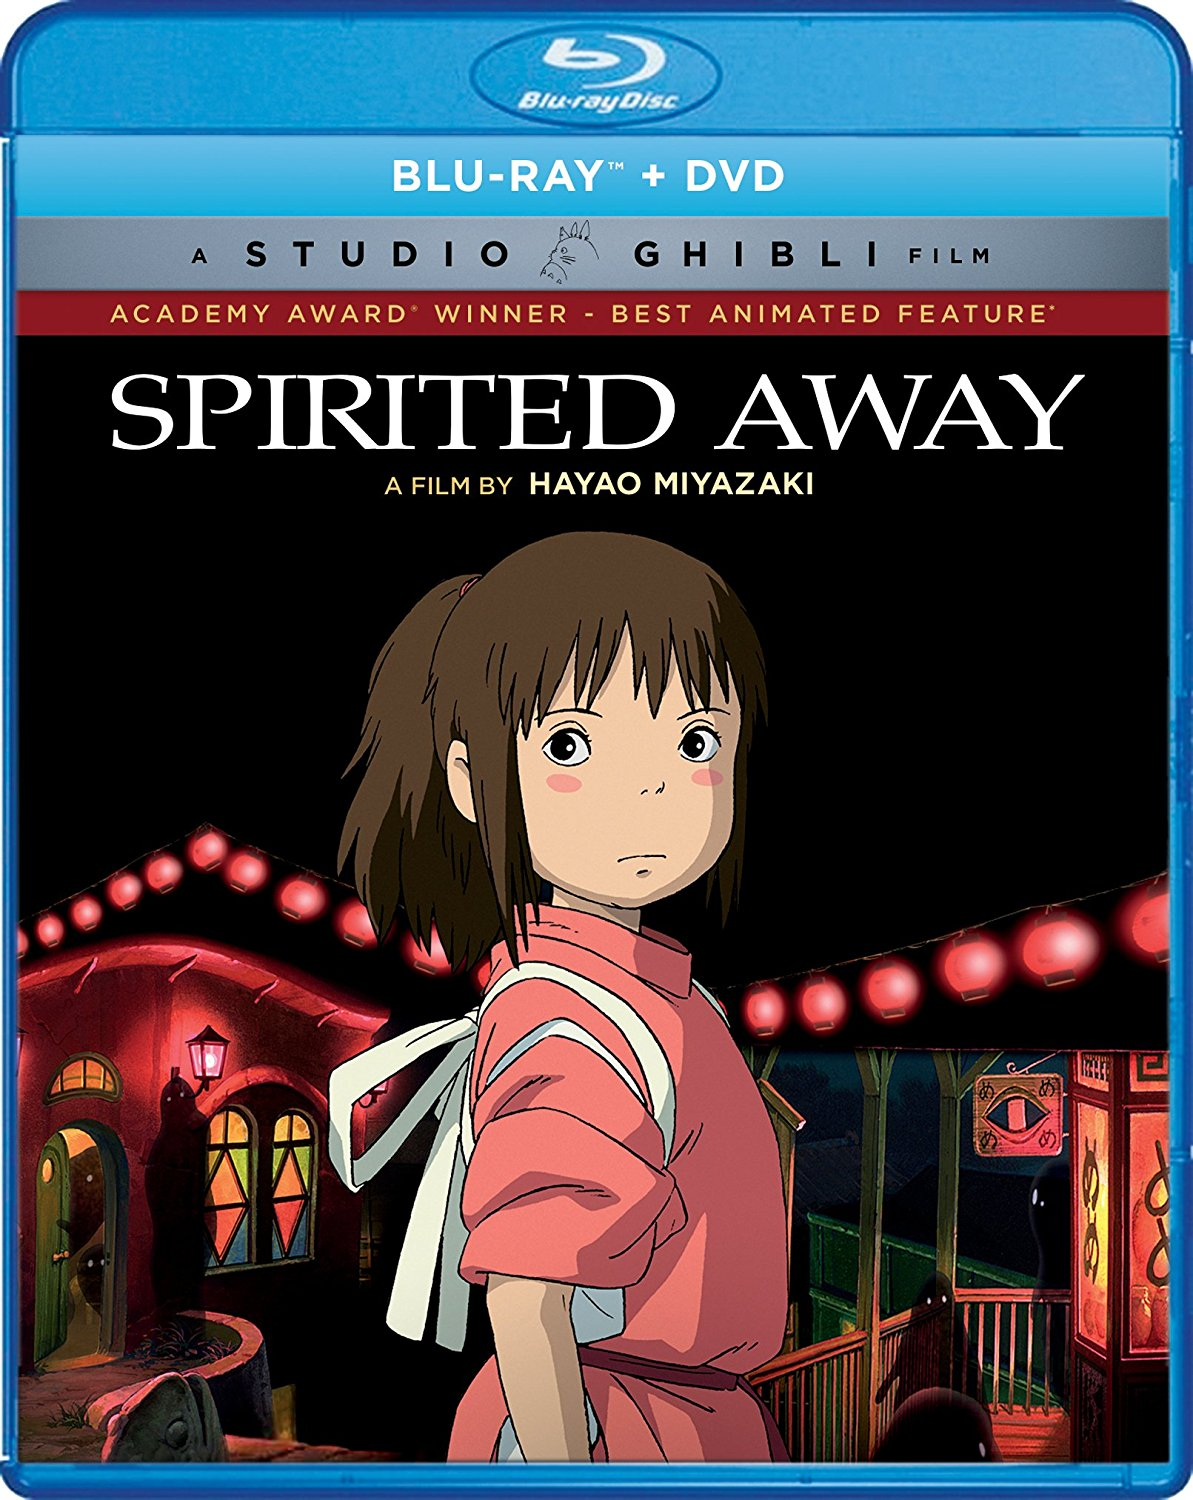 Spirited Away Blu-ray/DVD 826663181586